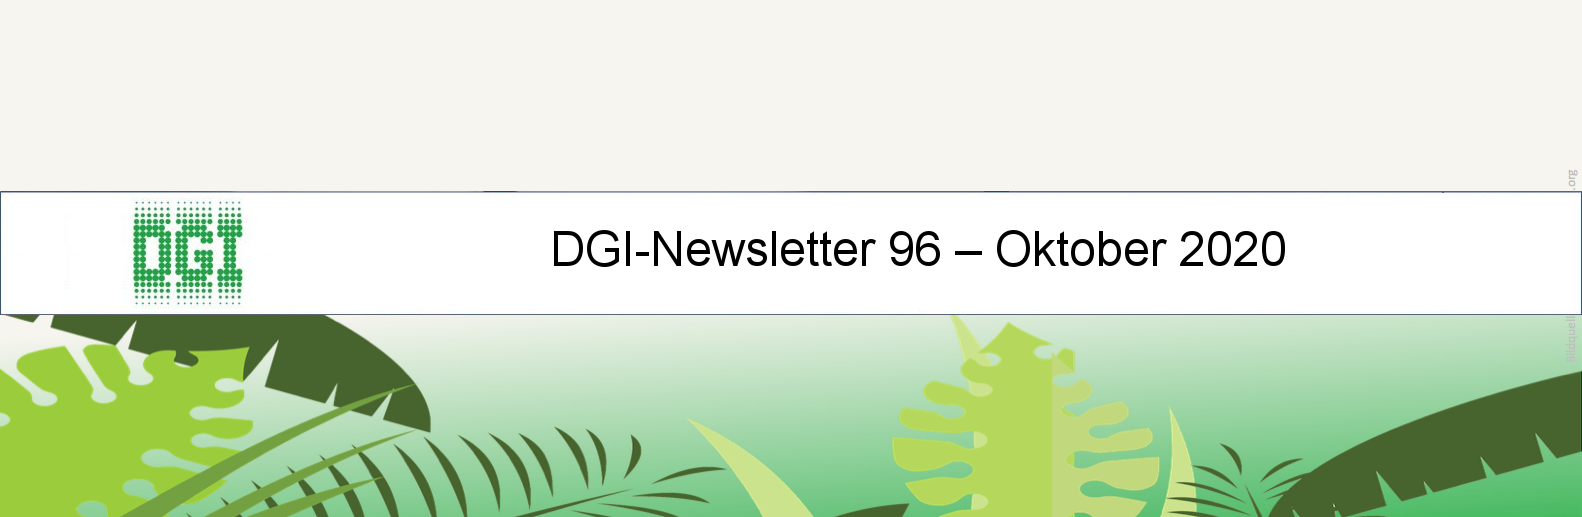 DGI-Newsletter 96 – Oktober 2020